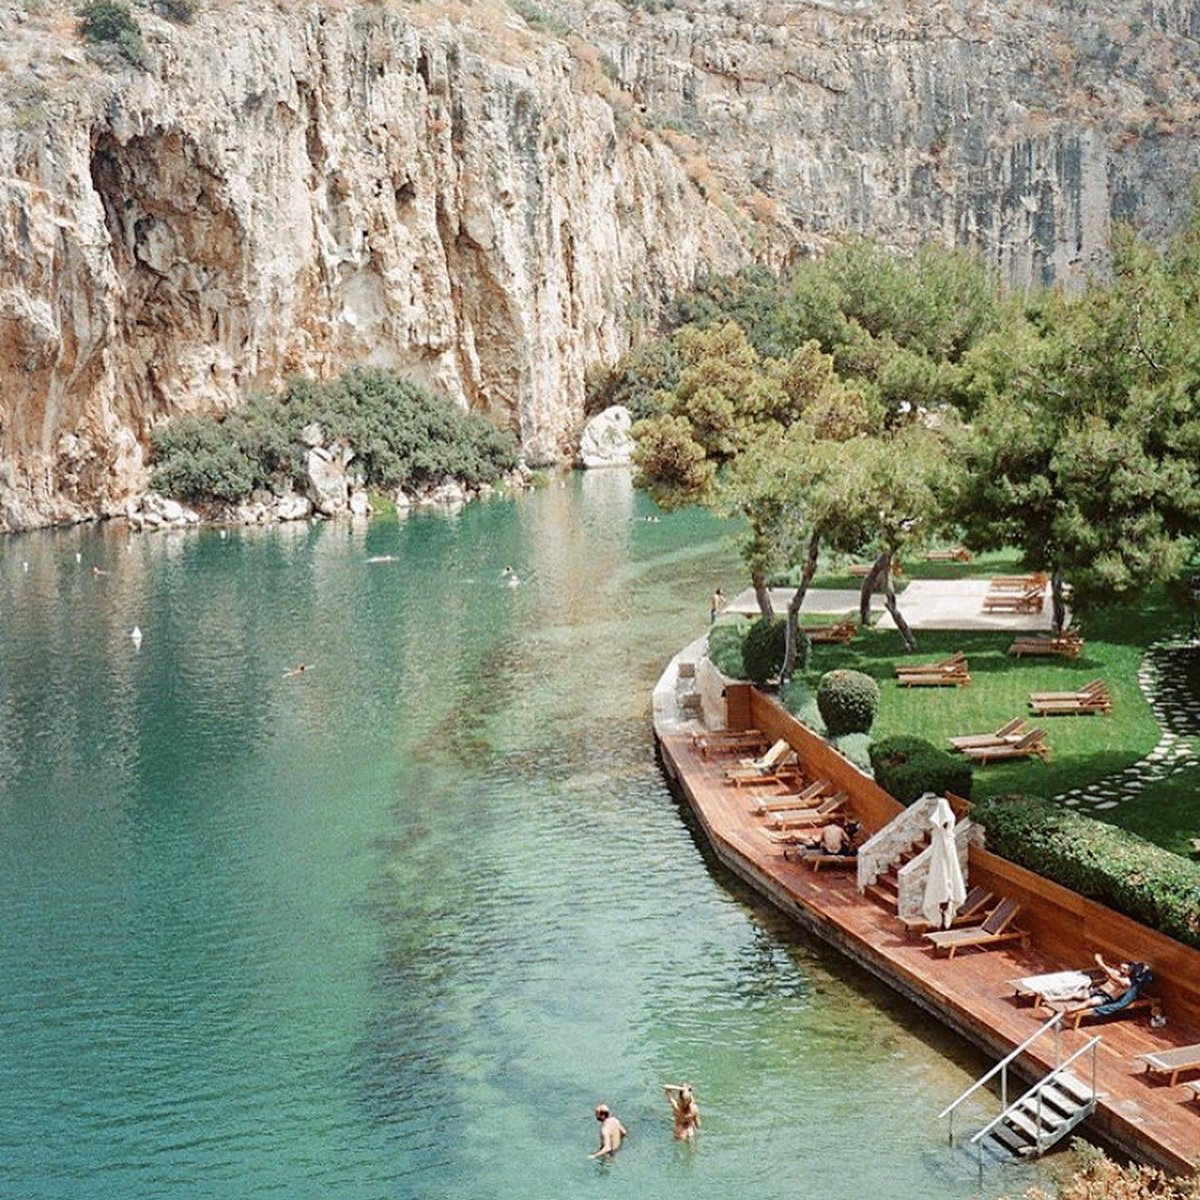 Explore INcredible Lake Vouliagmeni & swim all year round at this peaceful thermal spring lake // http://insightsgreece.com  launching August 2020 @nomadluxuries @lake_vouliagmeni_athens @viviemoraitou @perikles_merakos #wu_greece #greecesummer #athens #vouliagmenipic.twitter.com/J0vs47h876